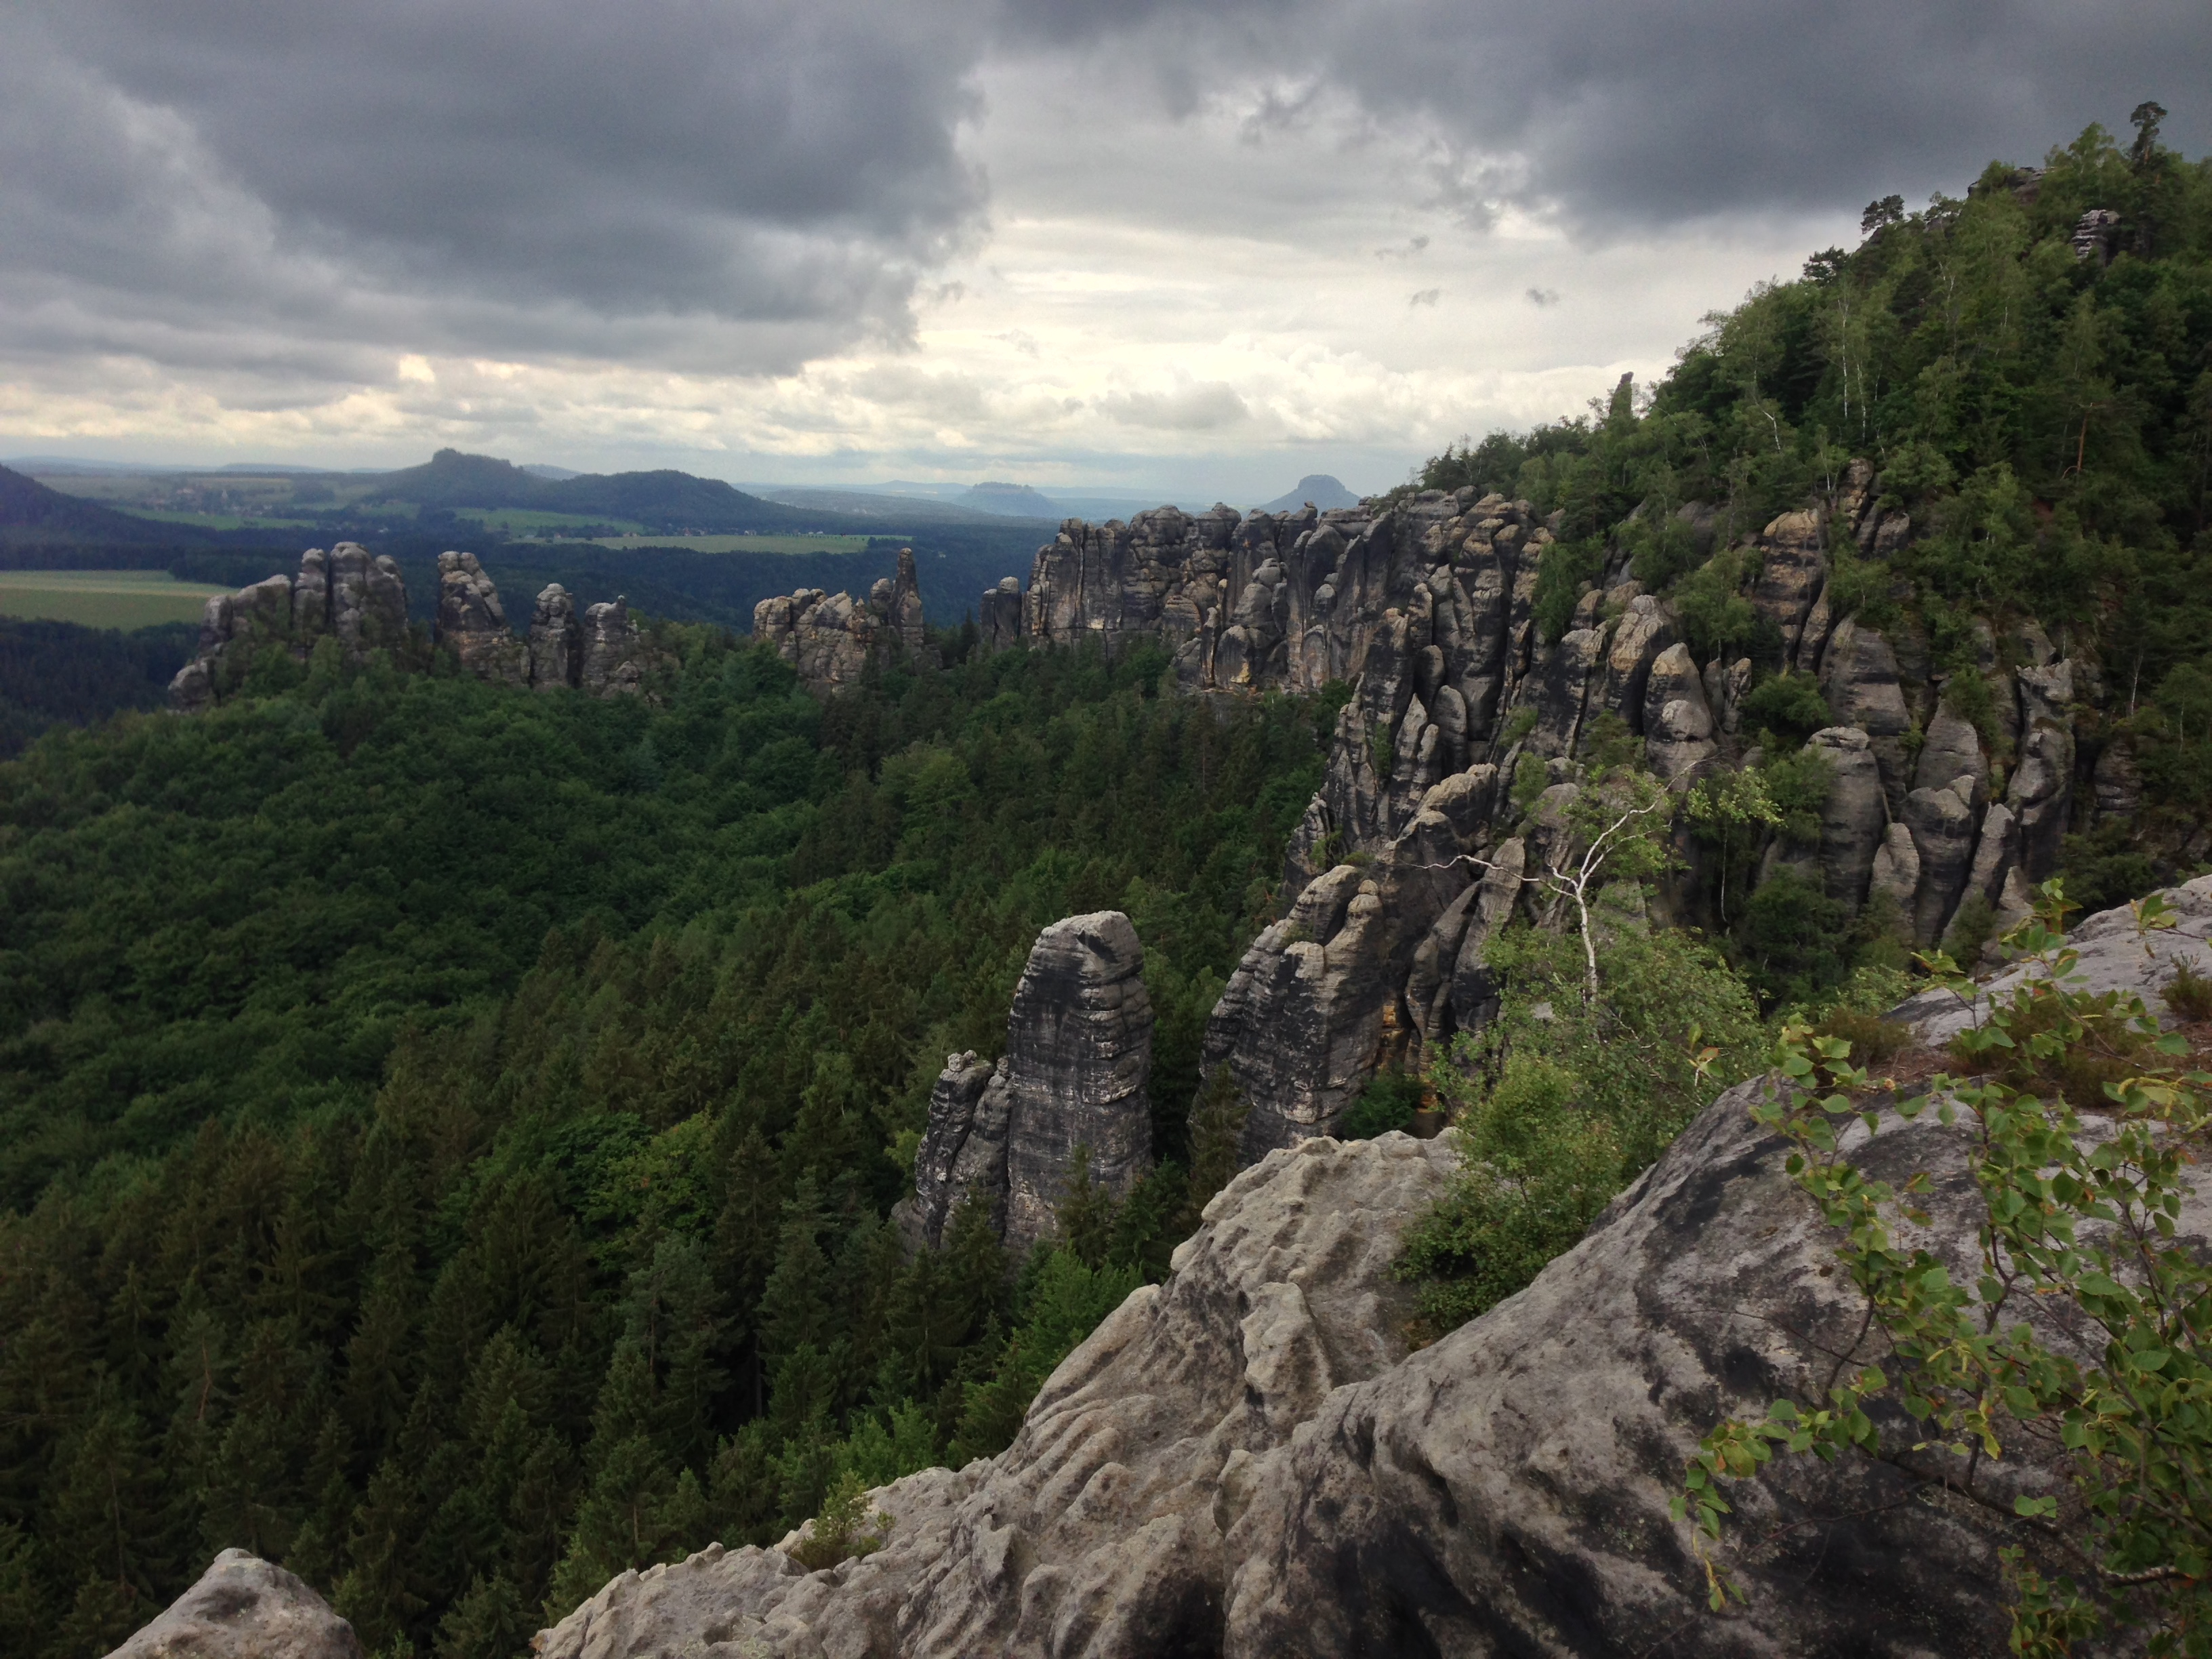 Elbe Sandstone Mountains Hike Malerweg- Nice View from Schrammsteine